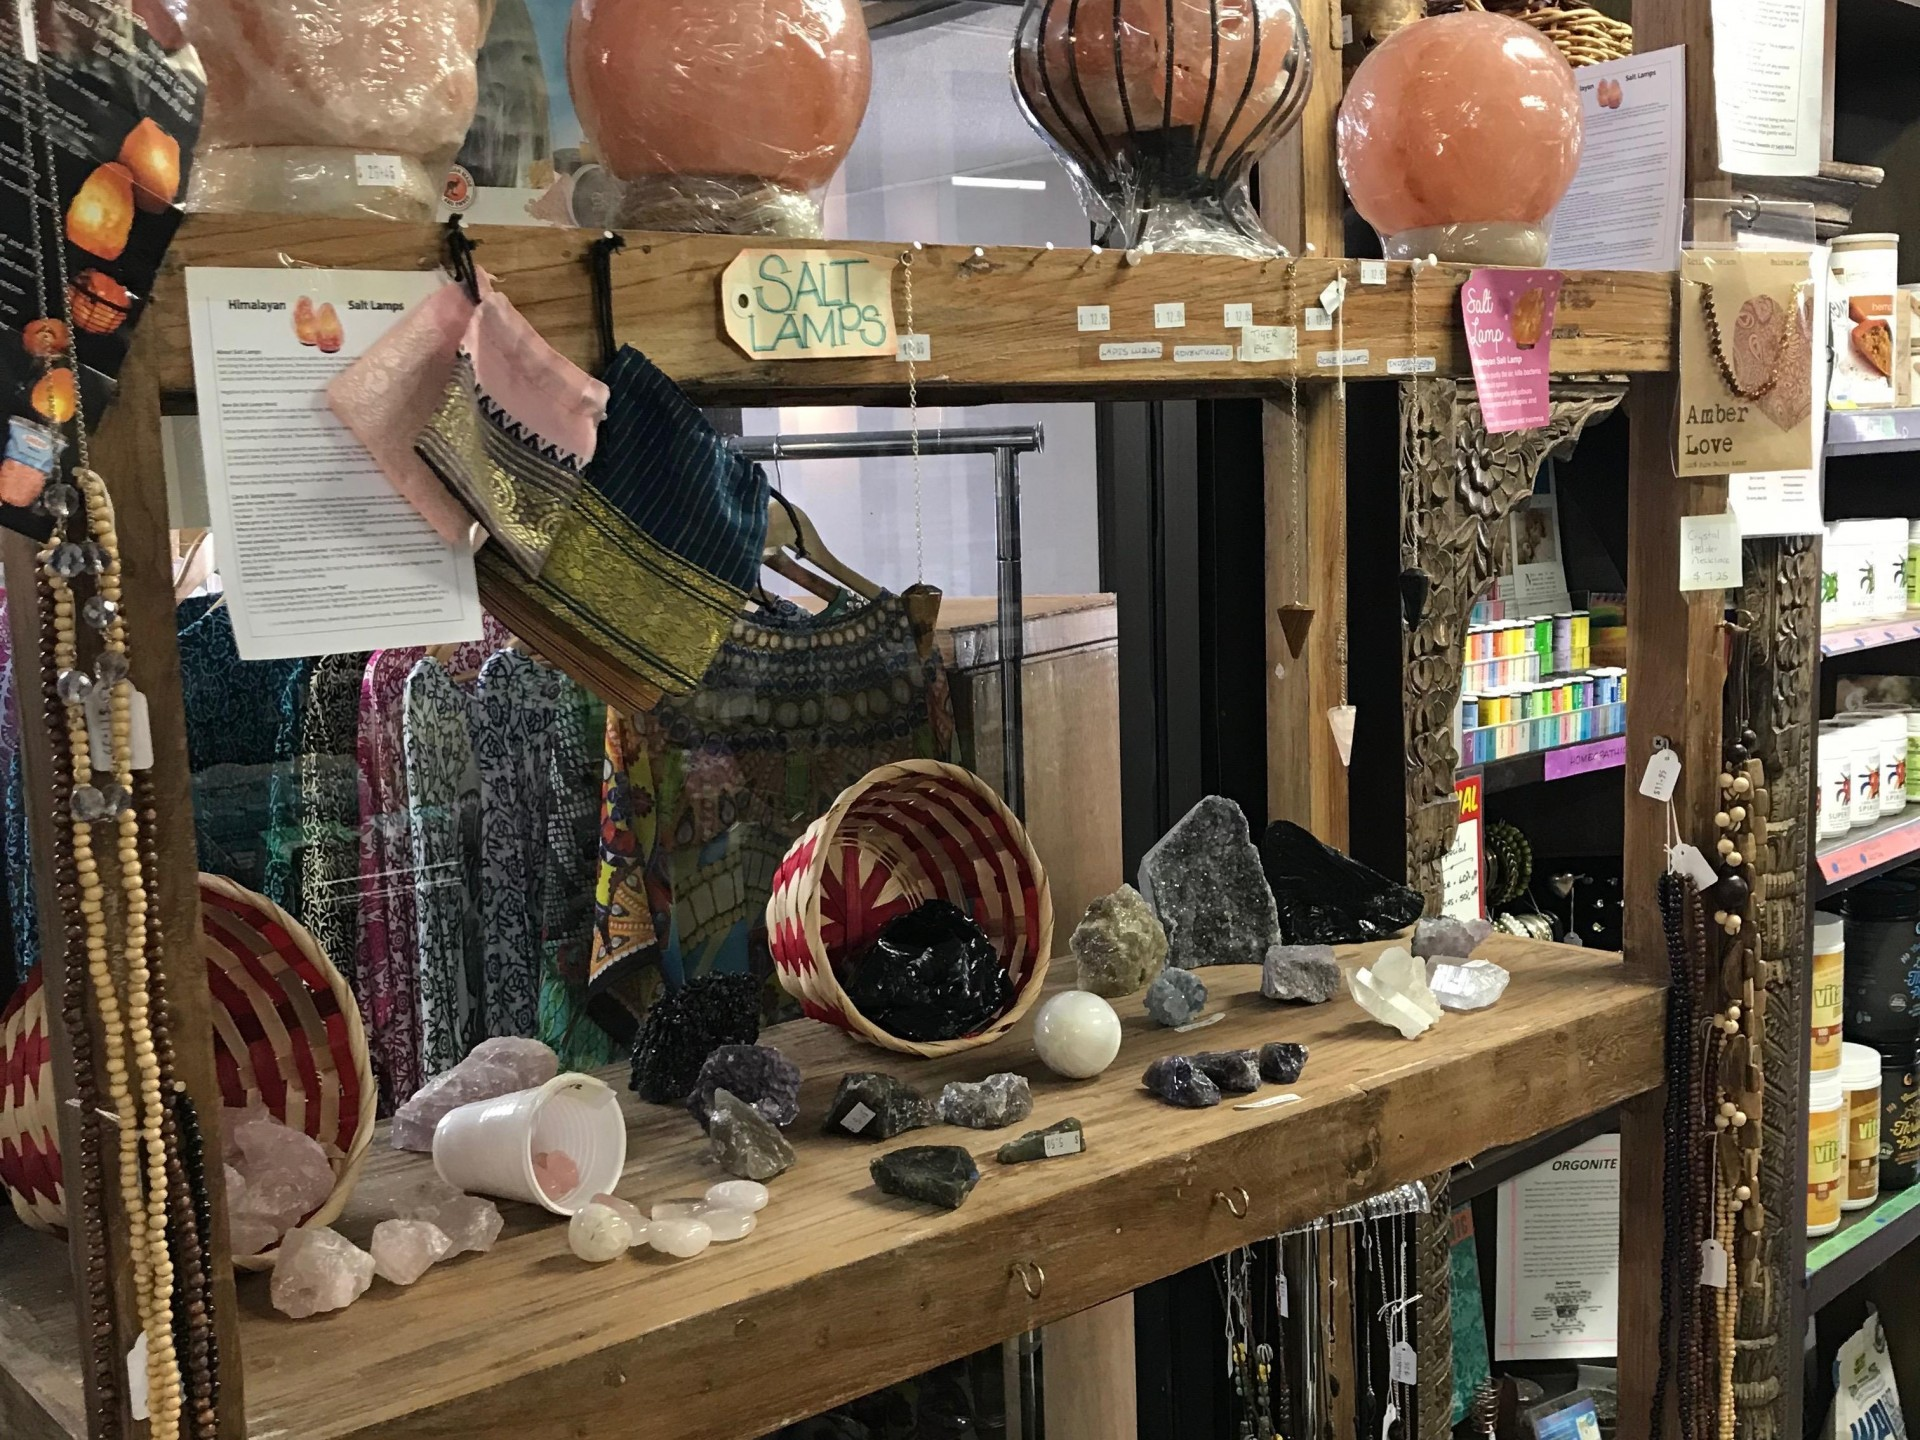 popular-health-food-organic-shop-in-noosa-for-sale-by-mbs-1